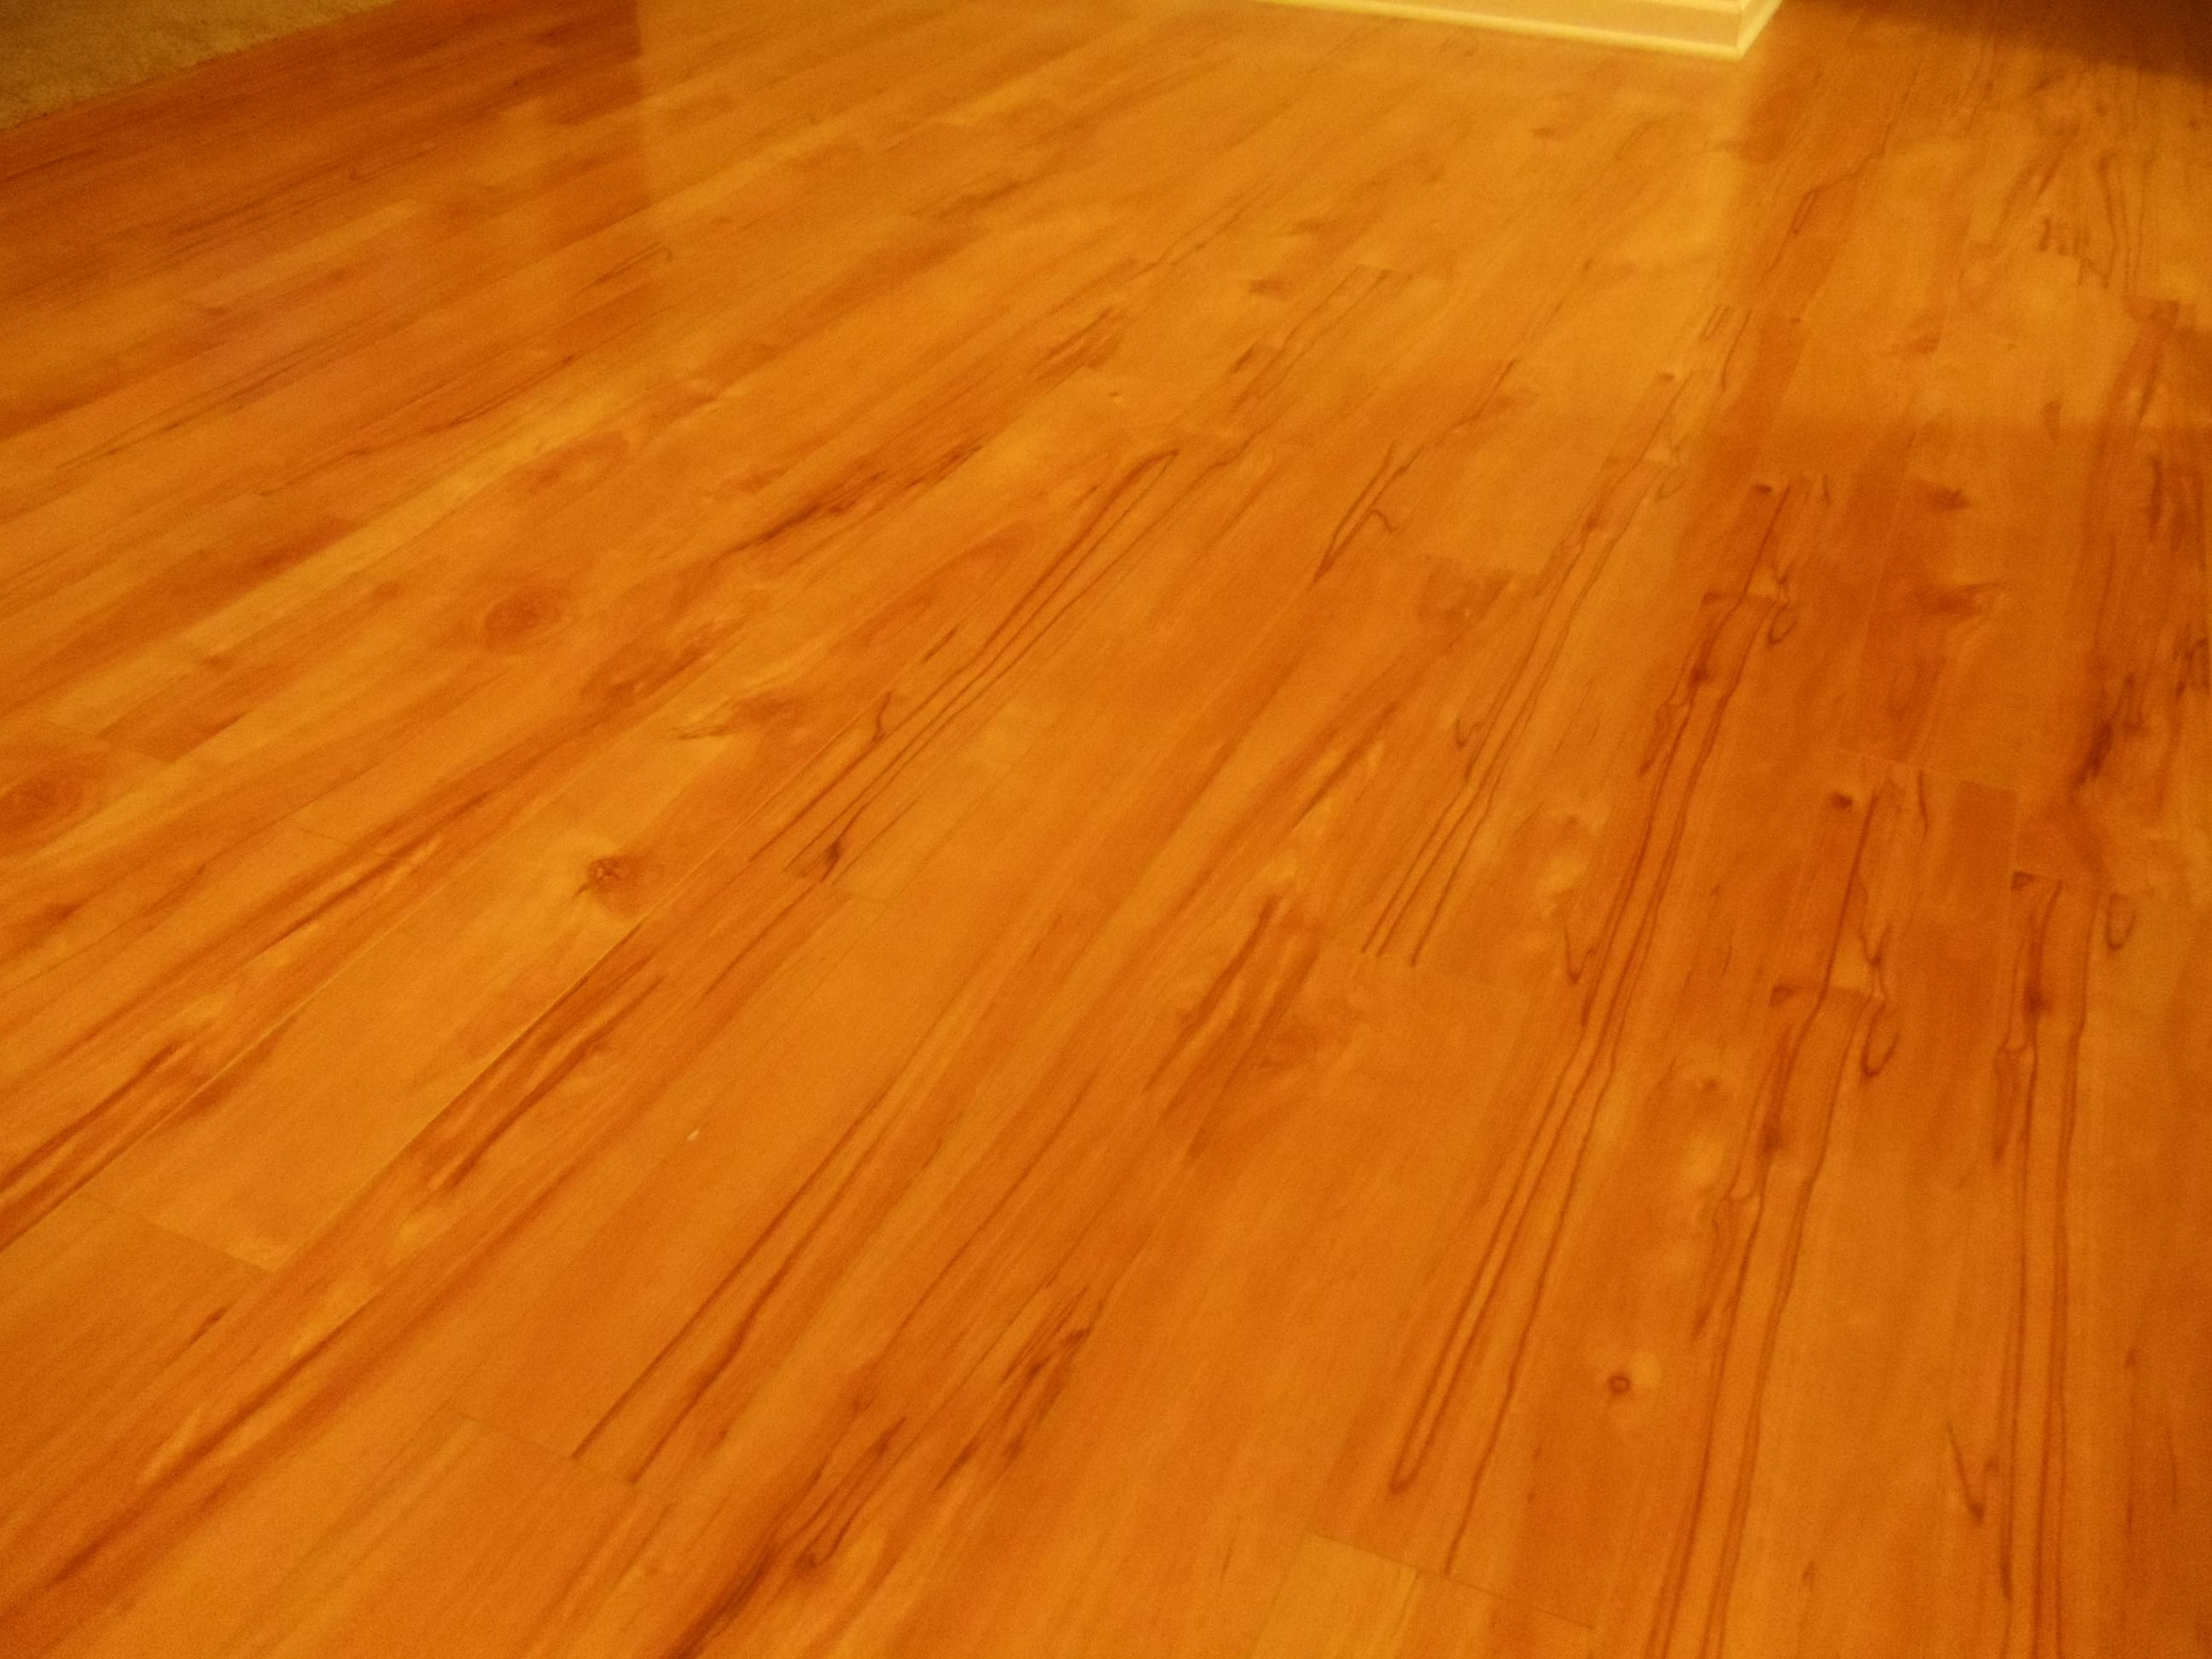 How to Install Interlocking Laminate Flooring - DIY Home